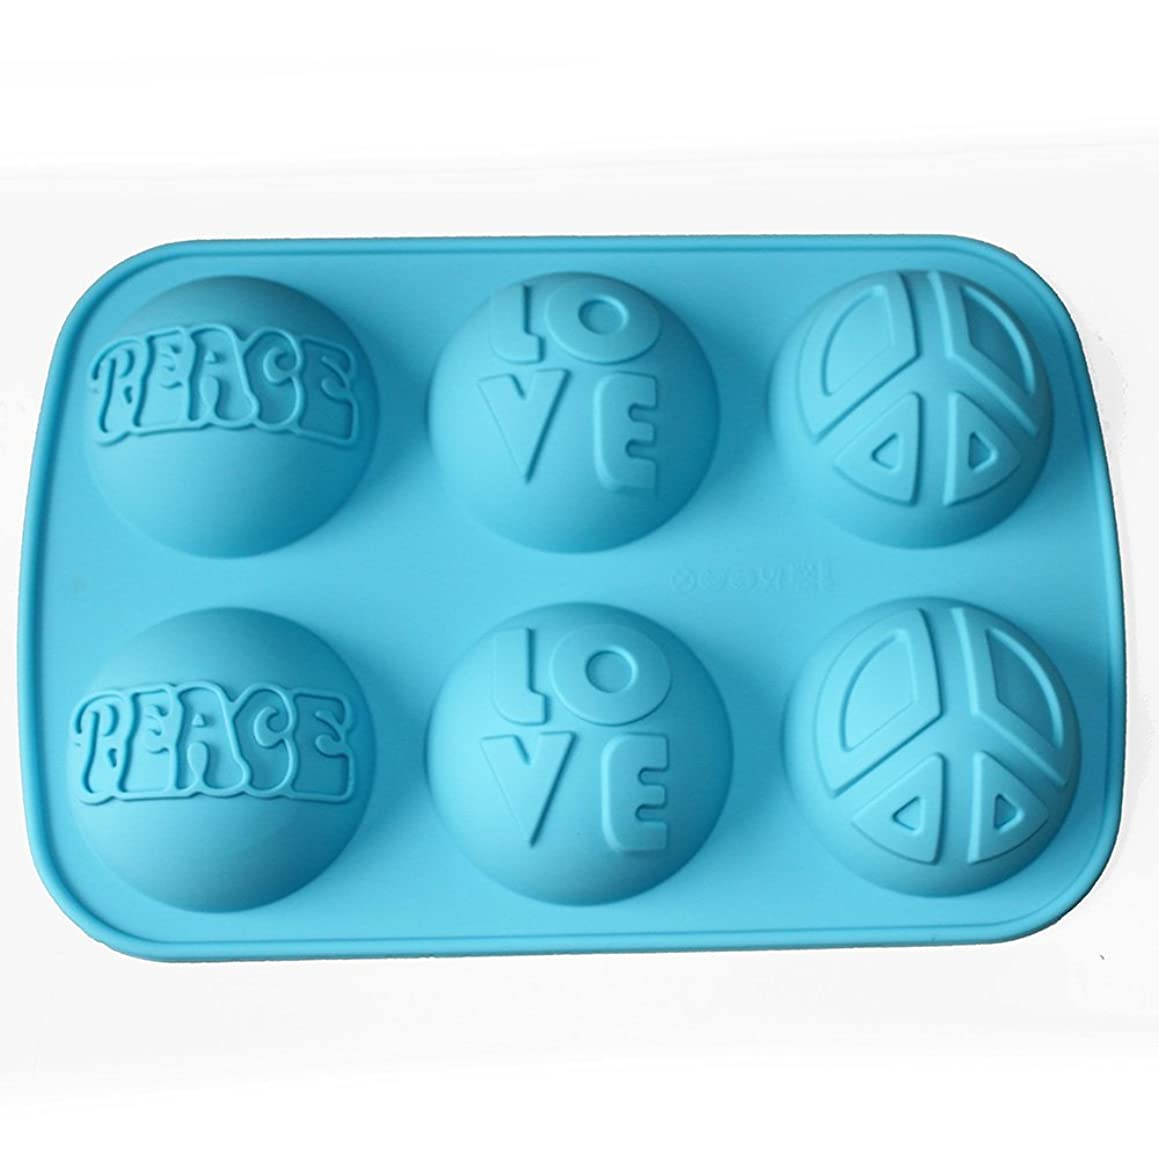 X-Haibei Love Peace Sign Soap Lotion Bar Round Dome Silicone Mold Making Supplies